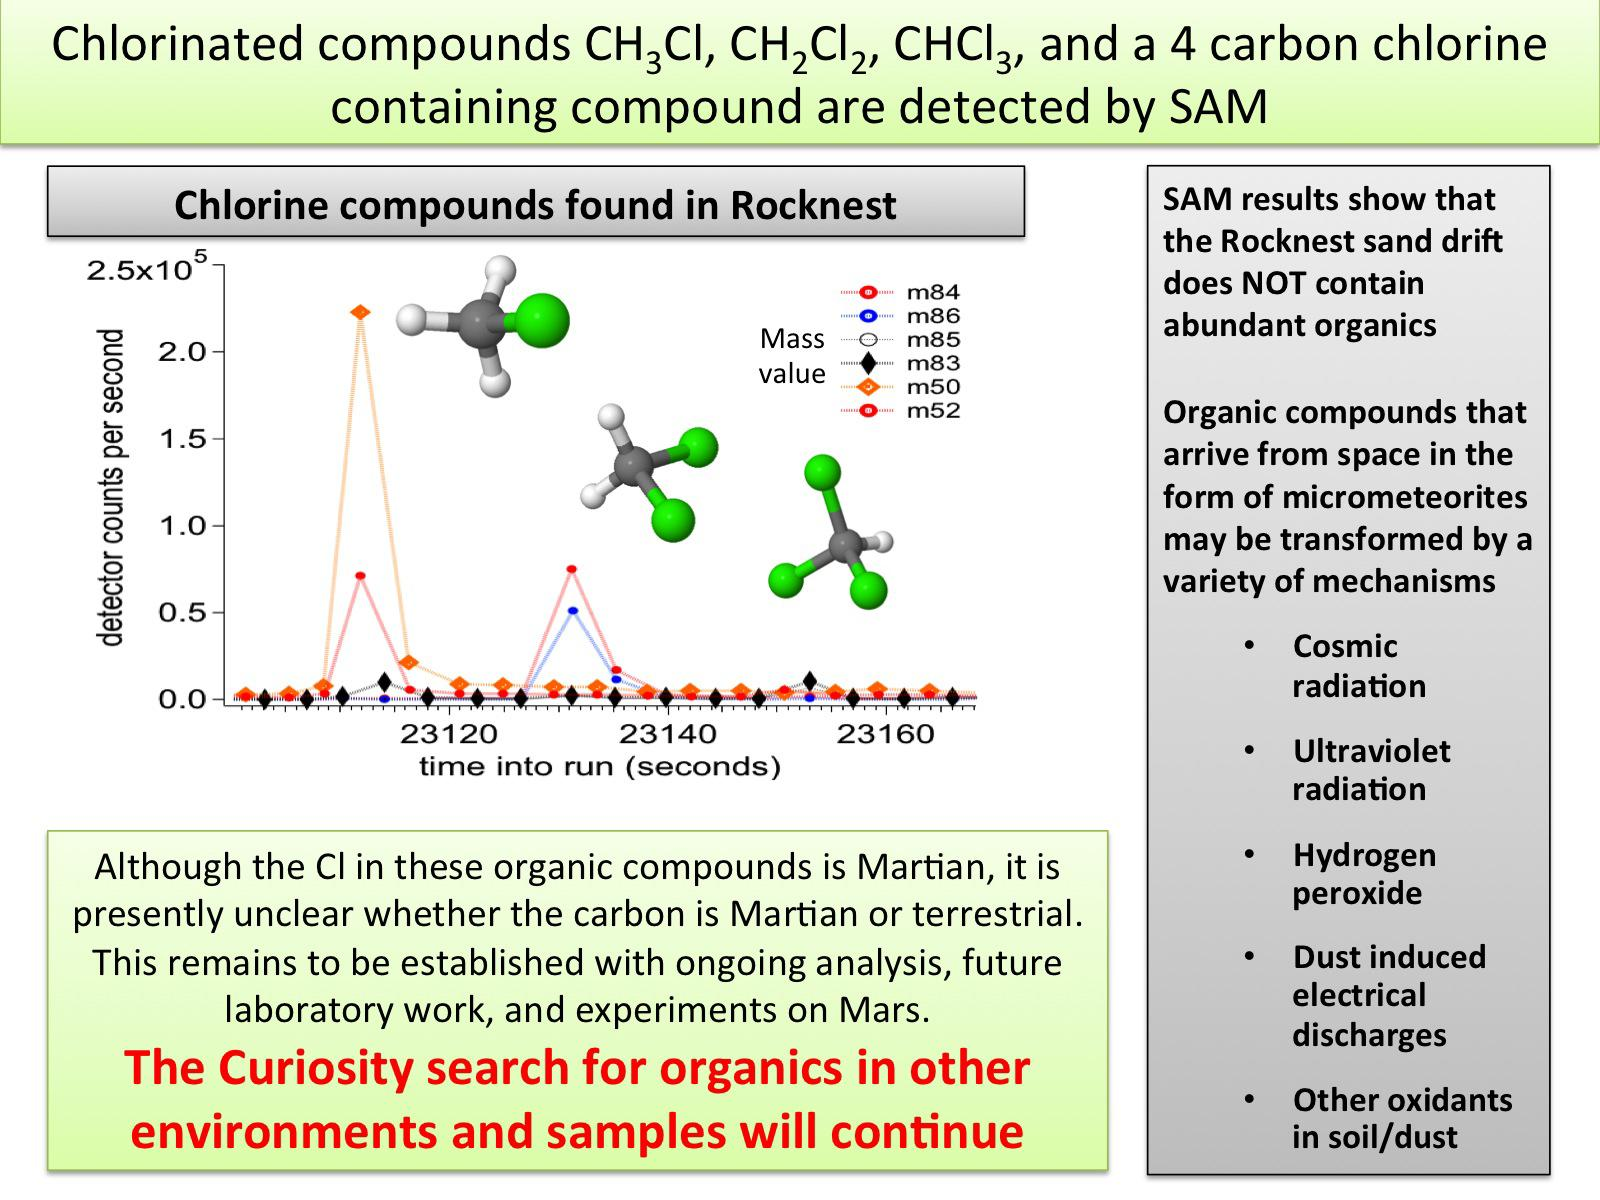 Carbon-chlorine compounds detected by SAM on Mars /></t:if><t:else><img src=